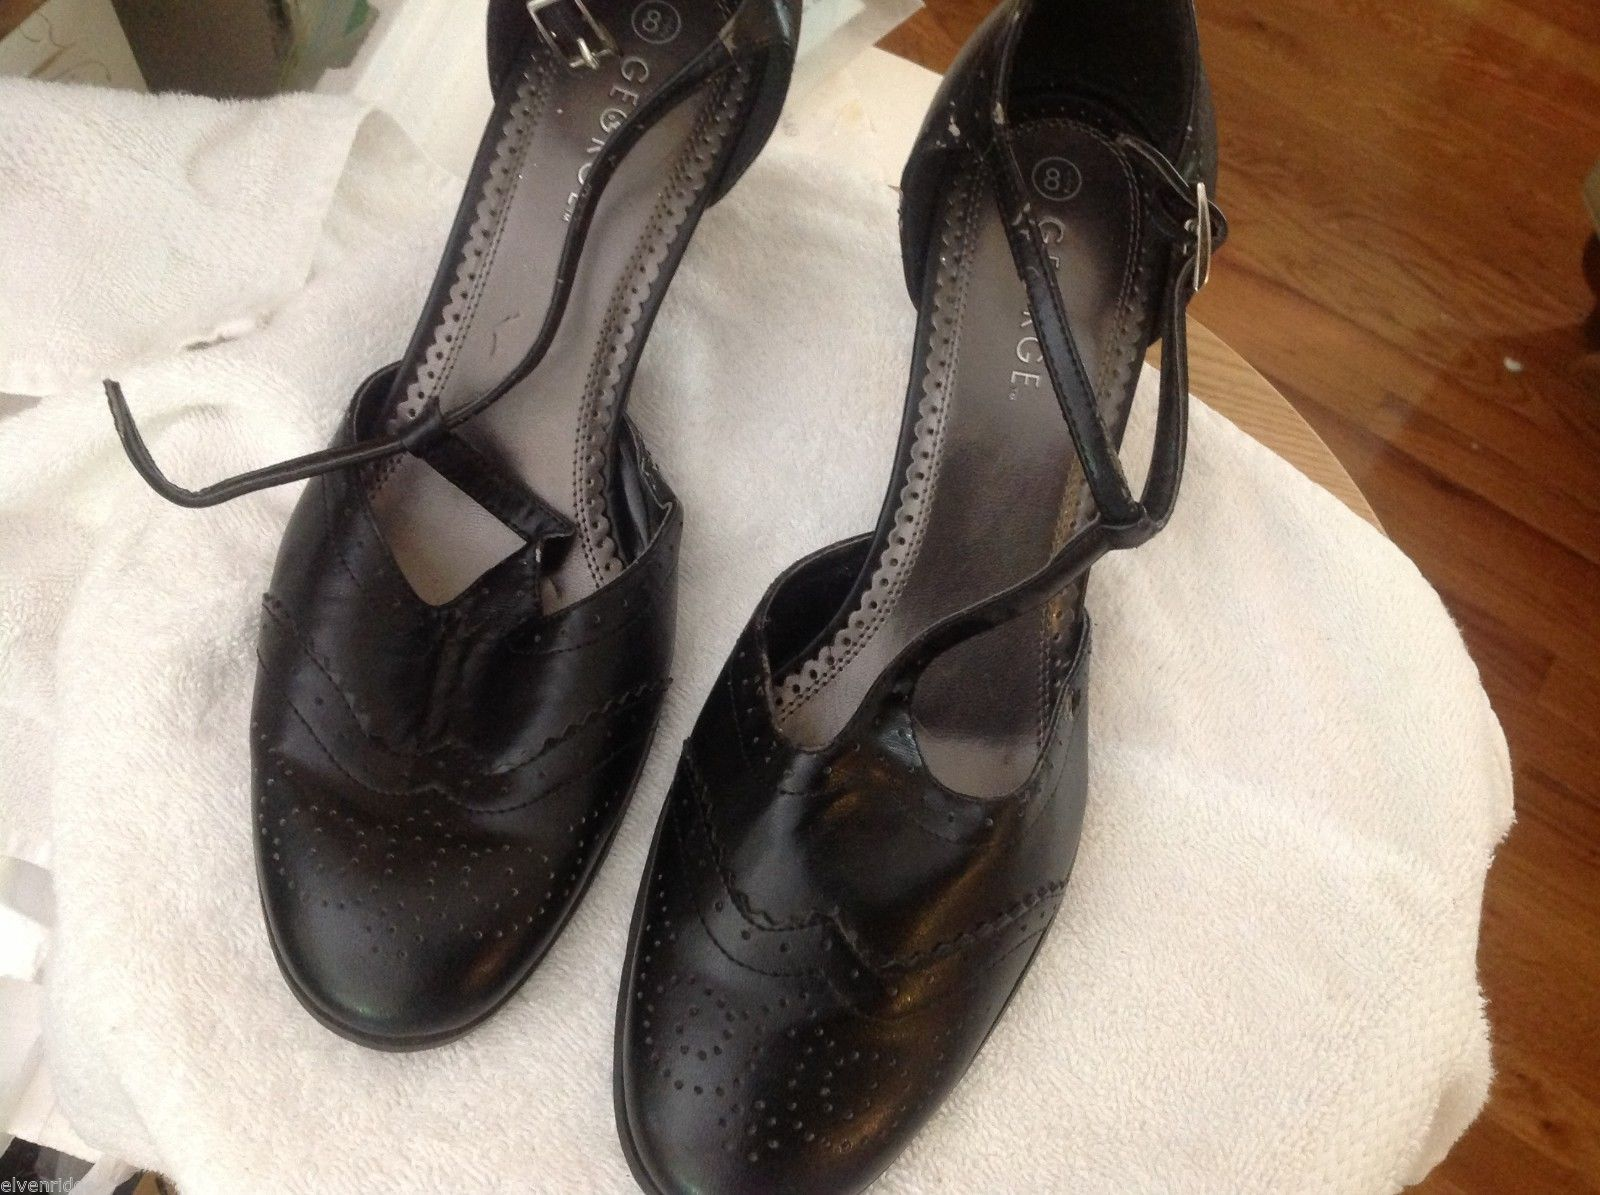 Black vintage look leather heels size 8 1/2 by George